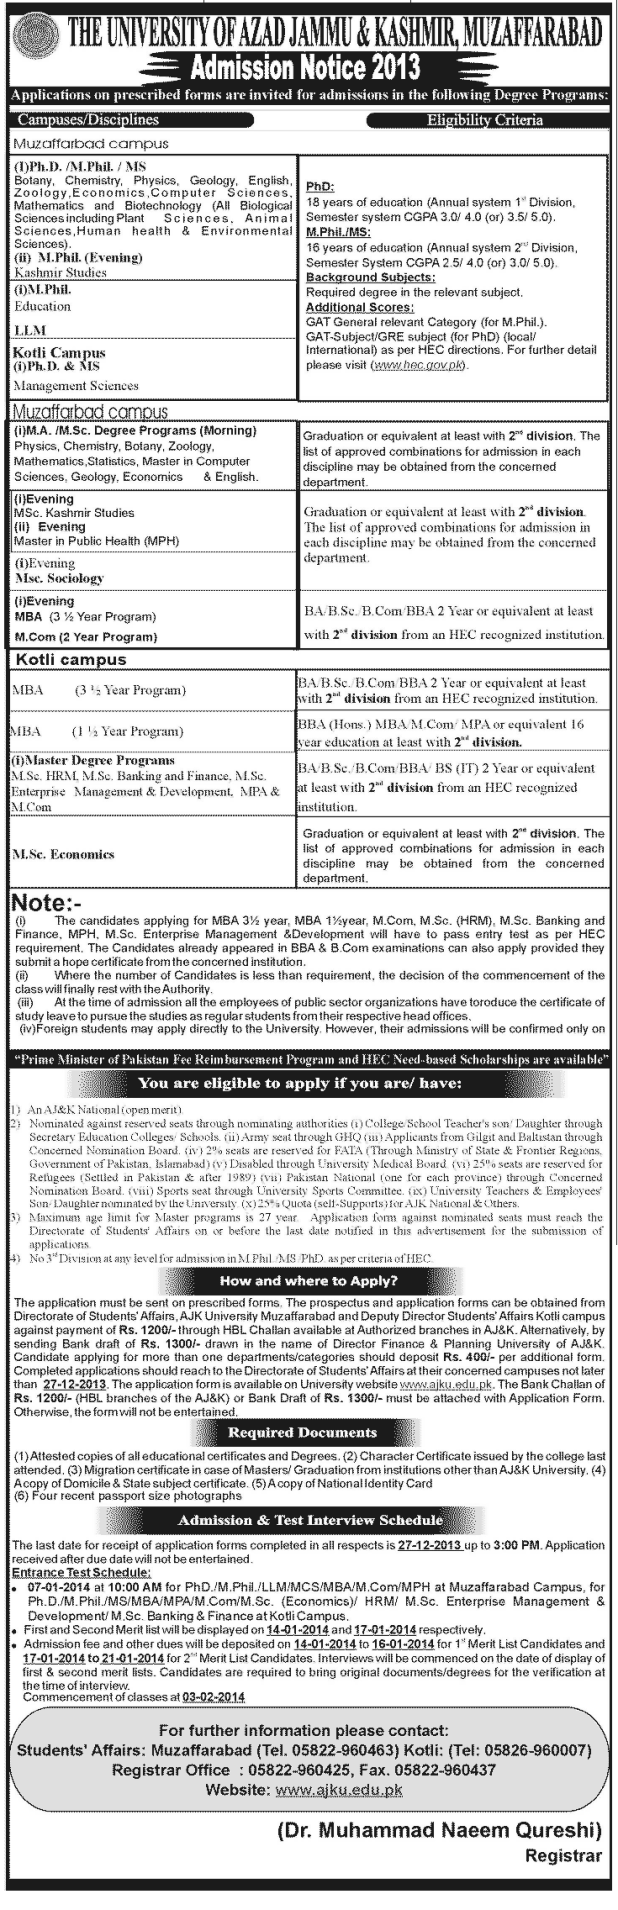 University of AZAD JAMMU and Kashmir AJKU Admissions 2013-2014